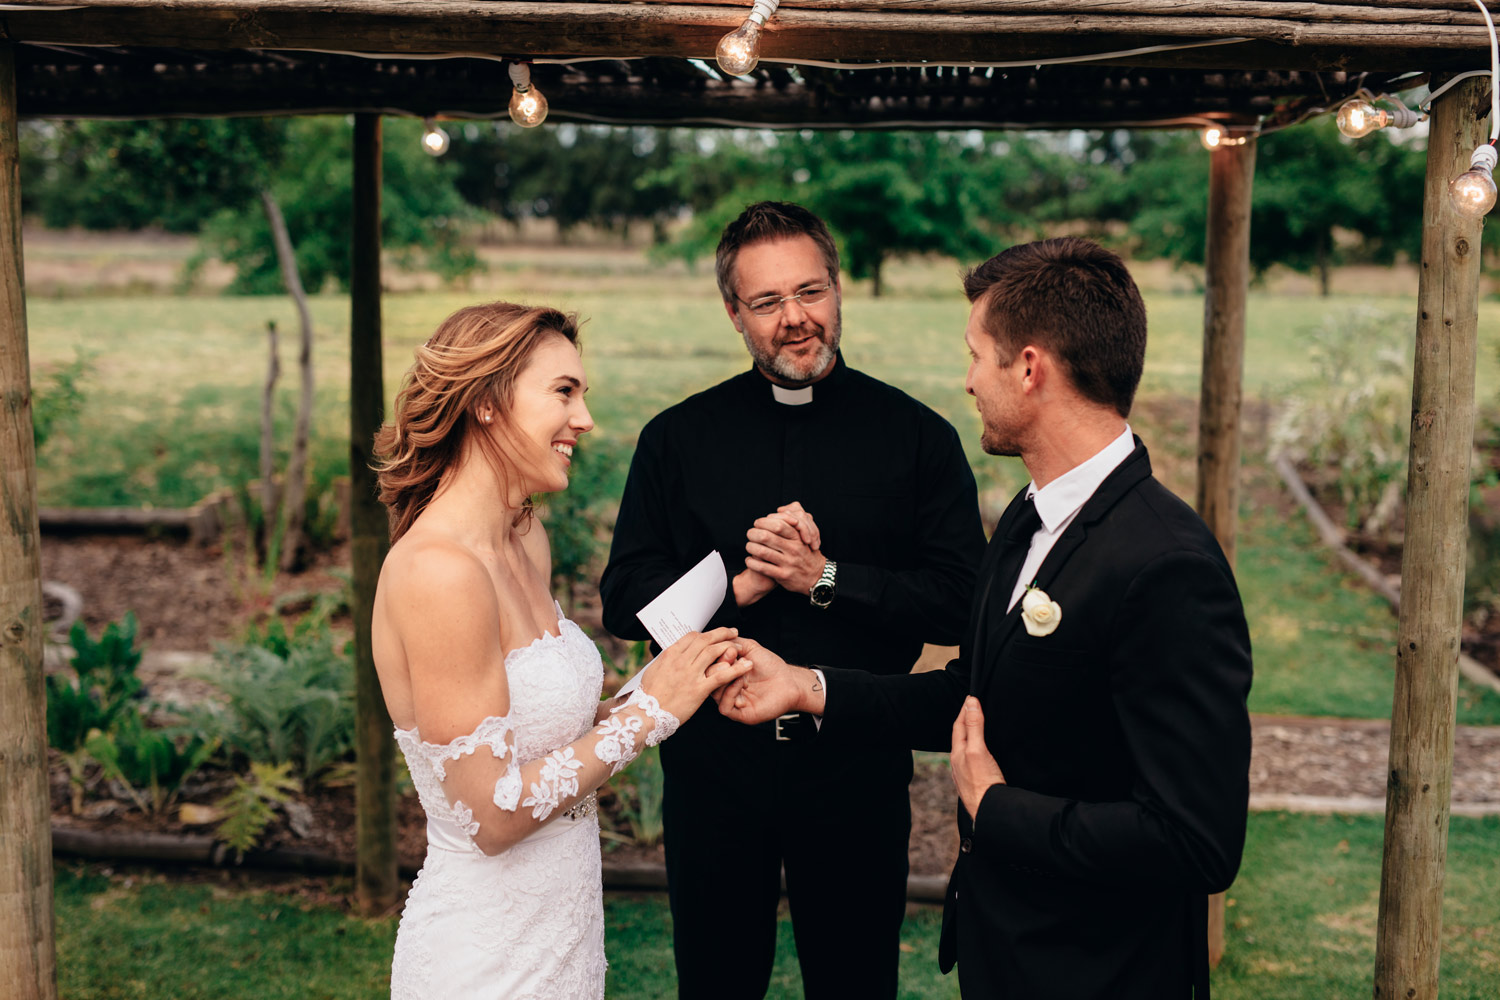 sweet wedding vows for her